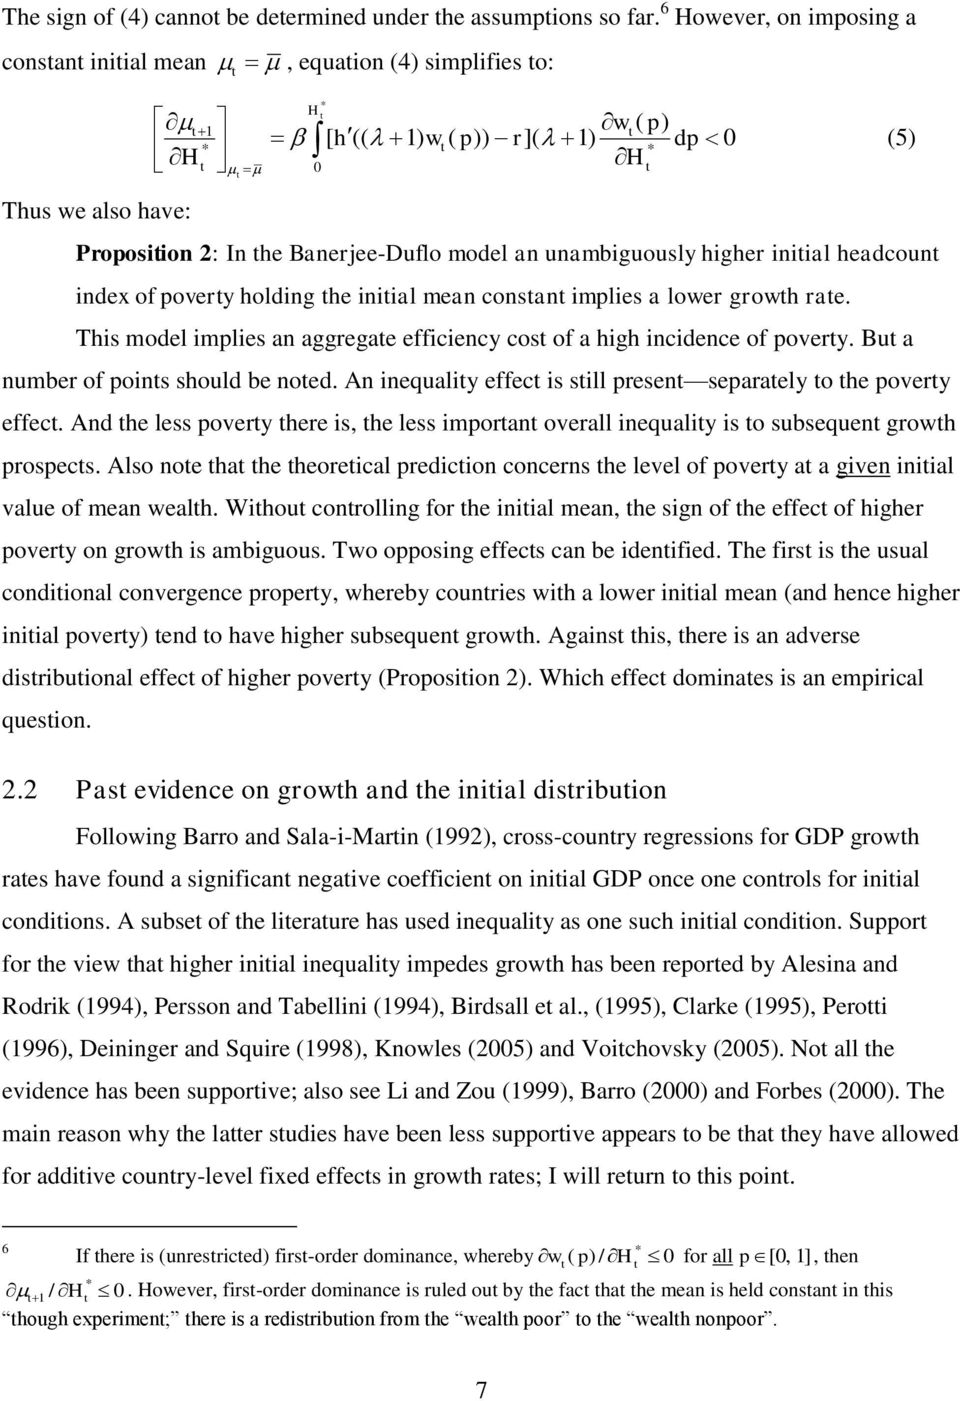 unambguously hgher nal headcount ndex of poverty holdng the nal mean constant mples a lower growth rate. Ths model mples an aggregate effcency cost of a hgh ncdence of poverty.